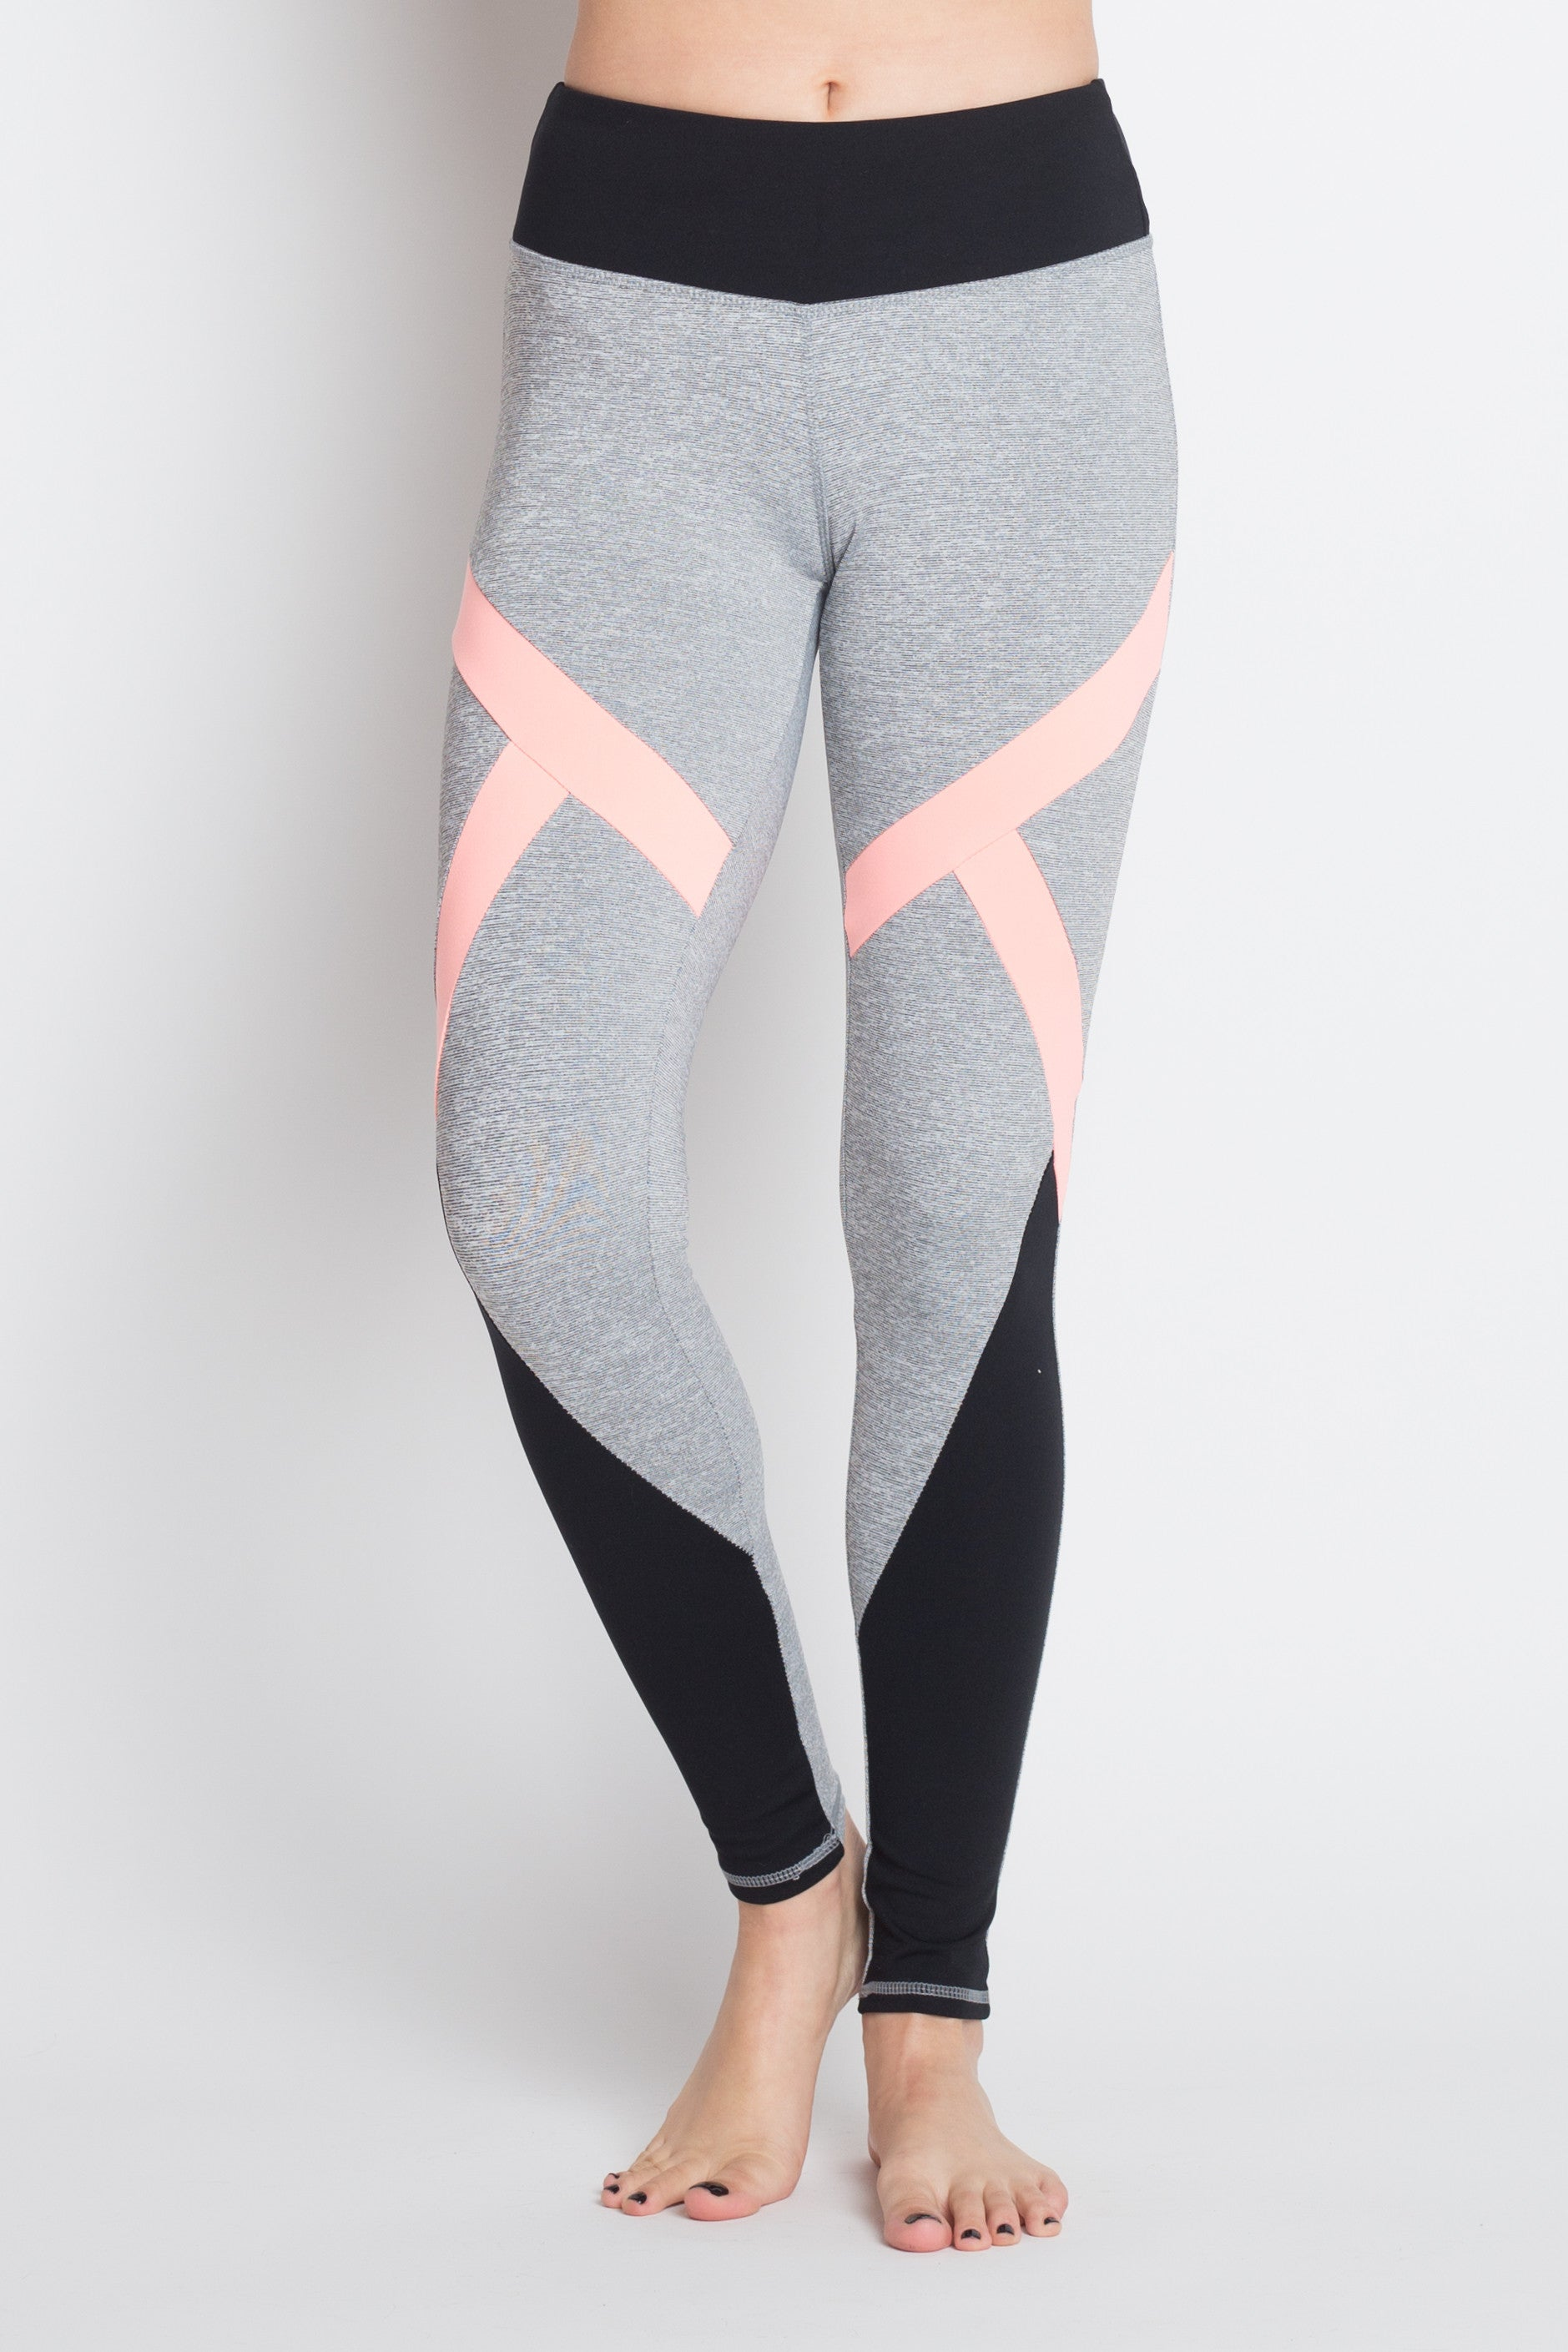 SYVANA Contrast Color Panel Yoga Legging